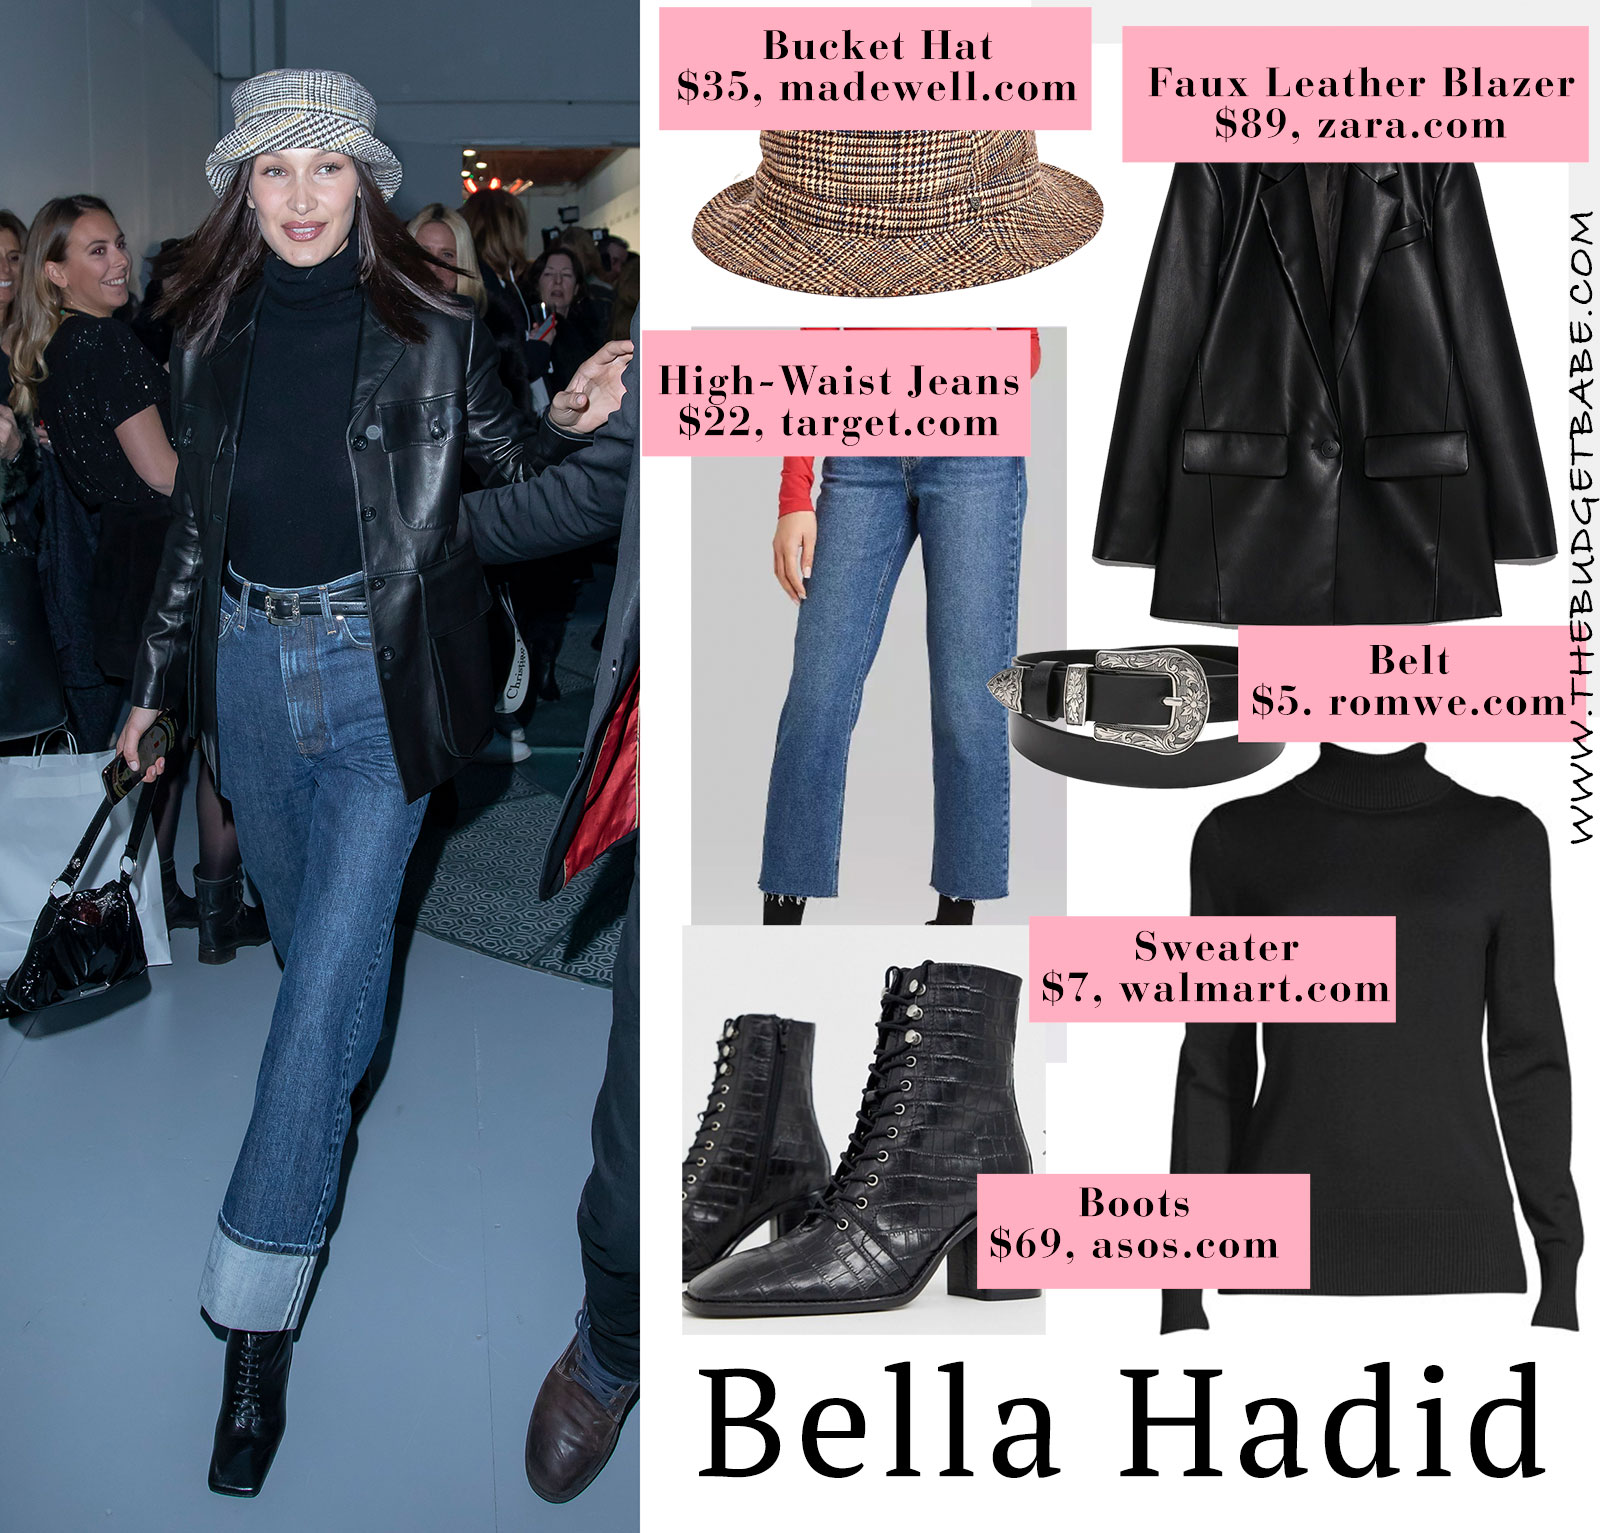 Bella Hadid's leather blazer and high waist jeans look for less